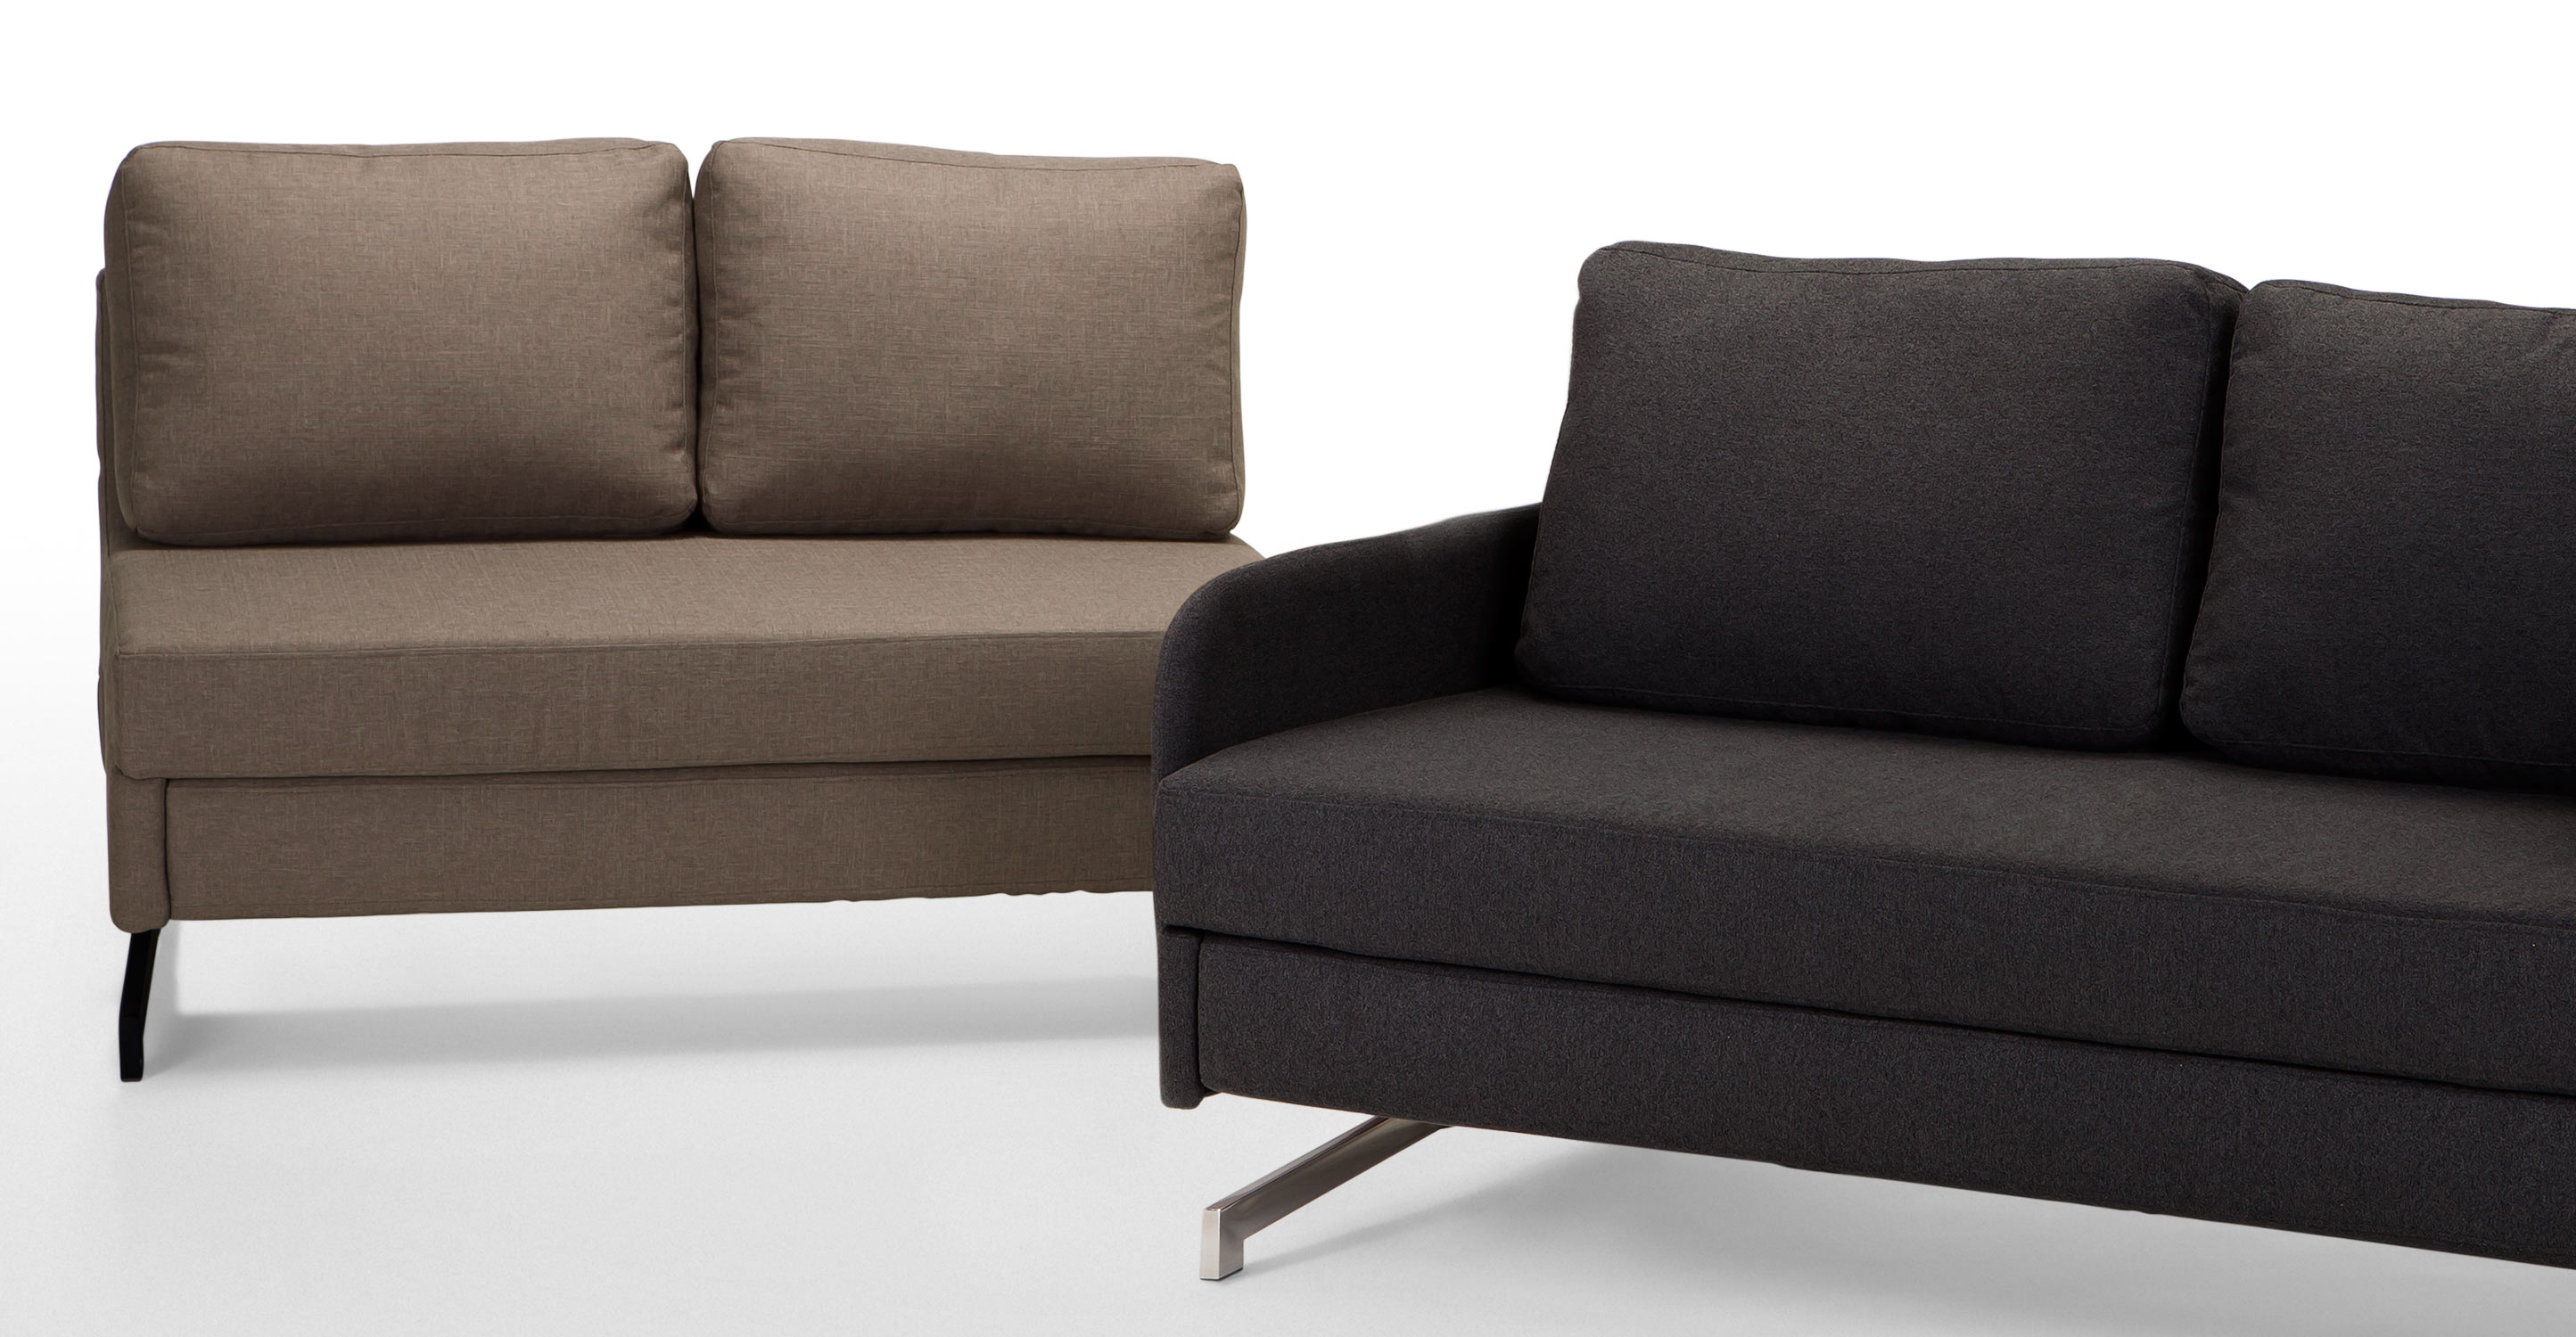 Motti Armless Sofa Bed in pipit beige   made.com